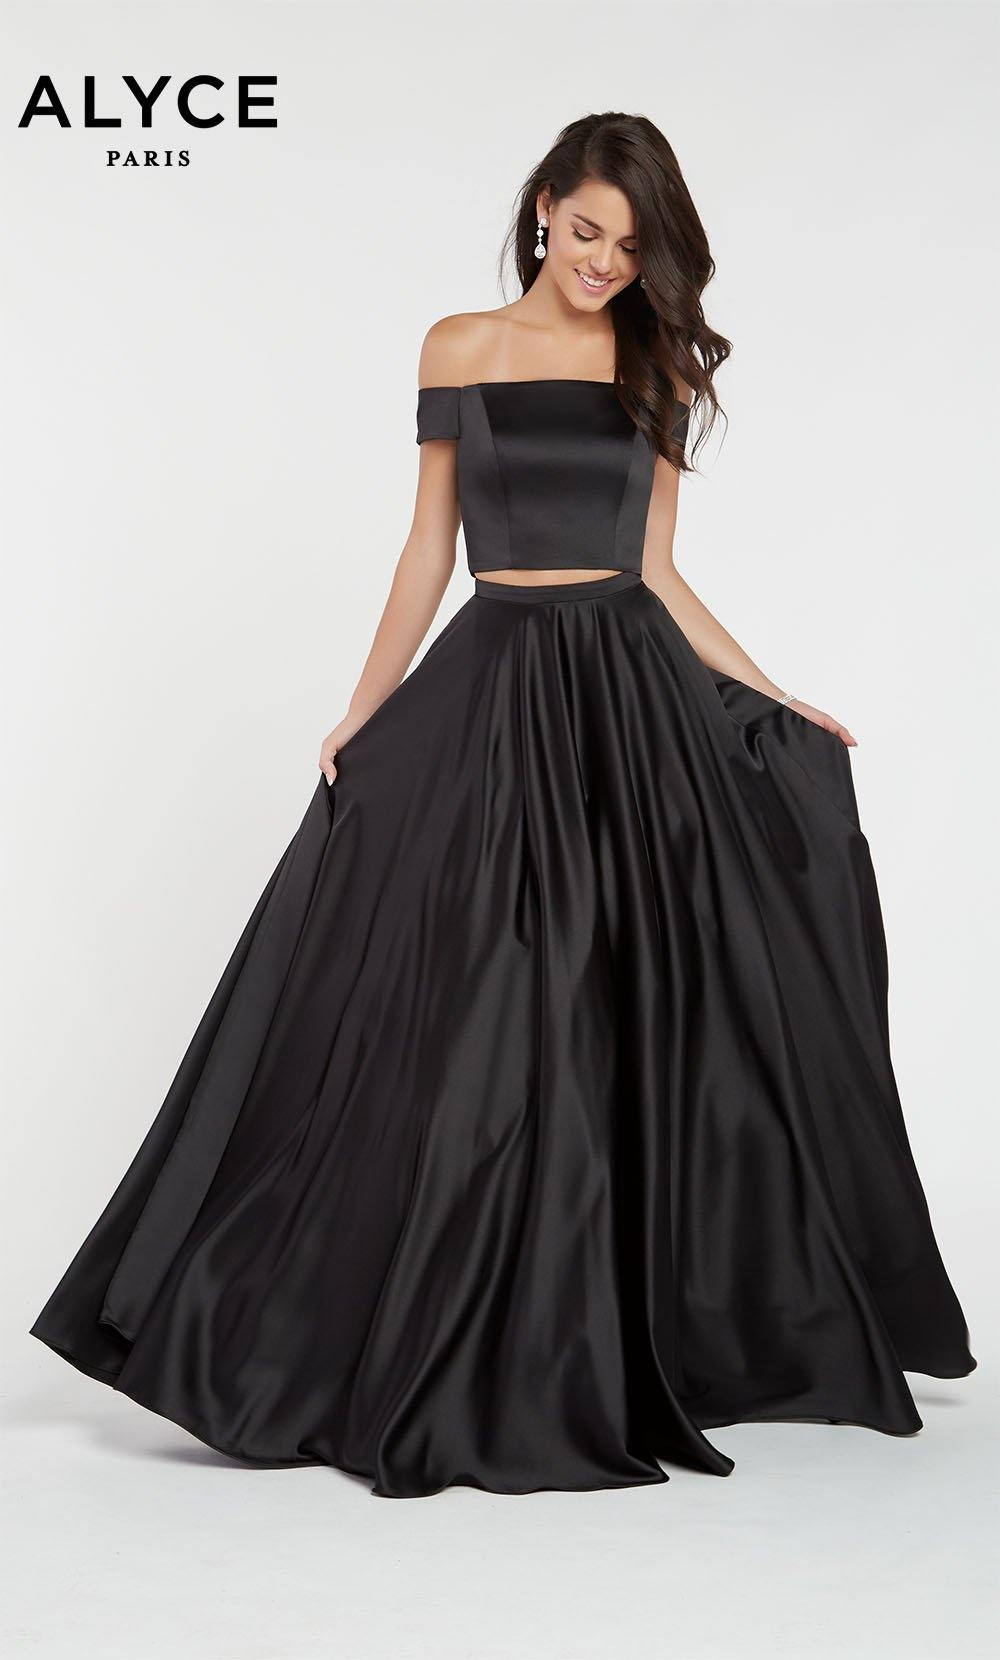 Black satin off the shoulder two piece prom dress